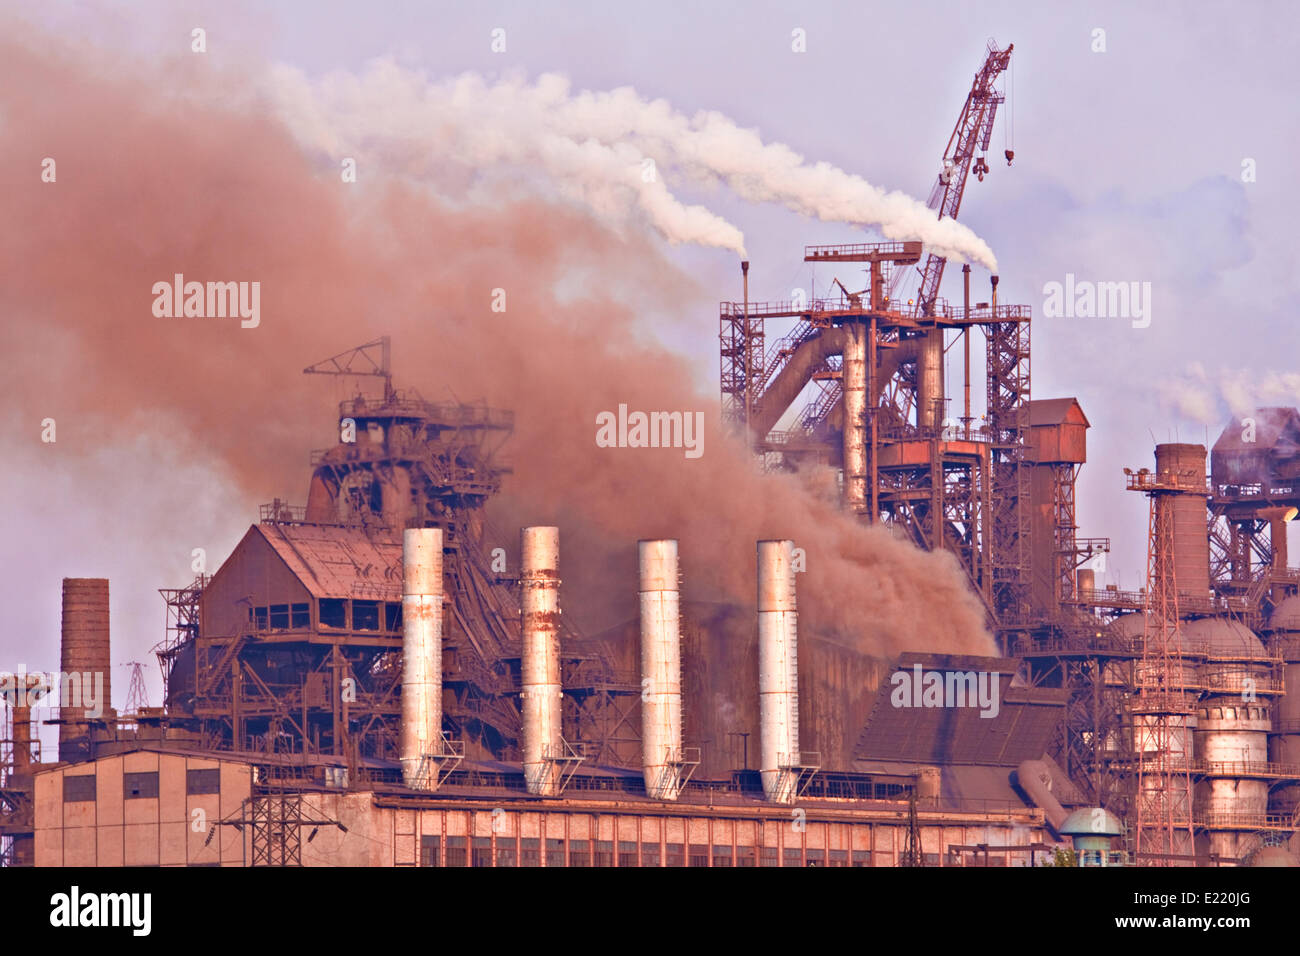 heavy industry production plant - Stock Image